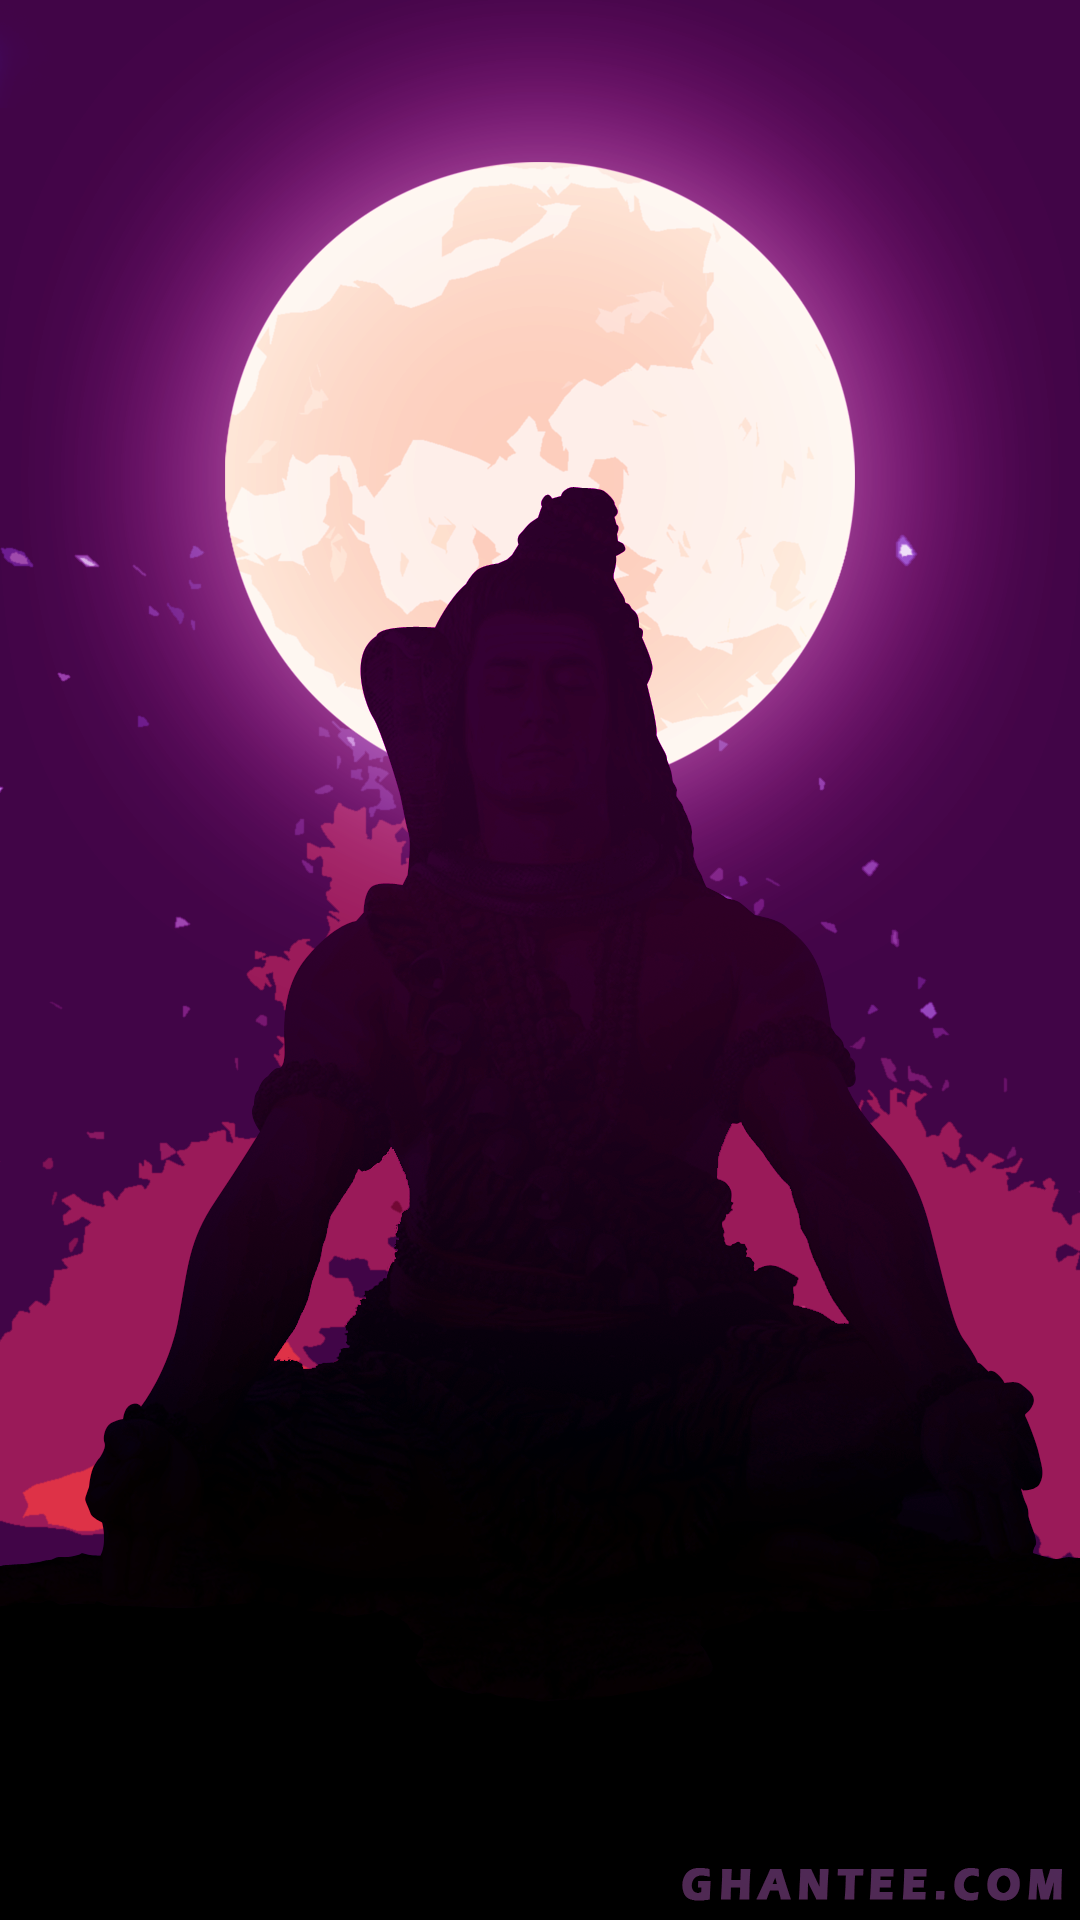 lord Shiva meditating phone wallpaper